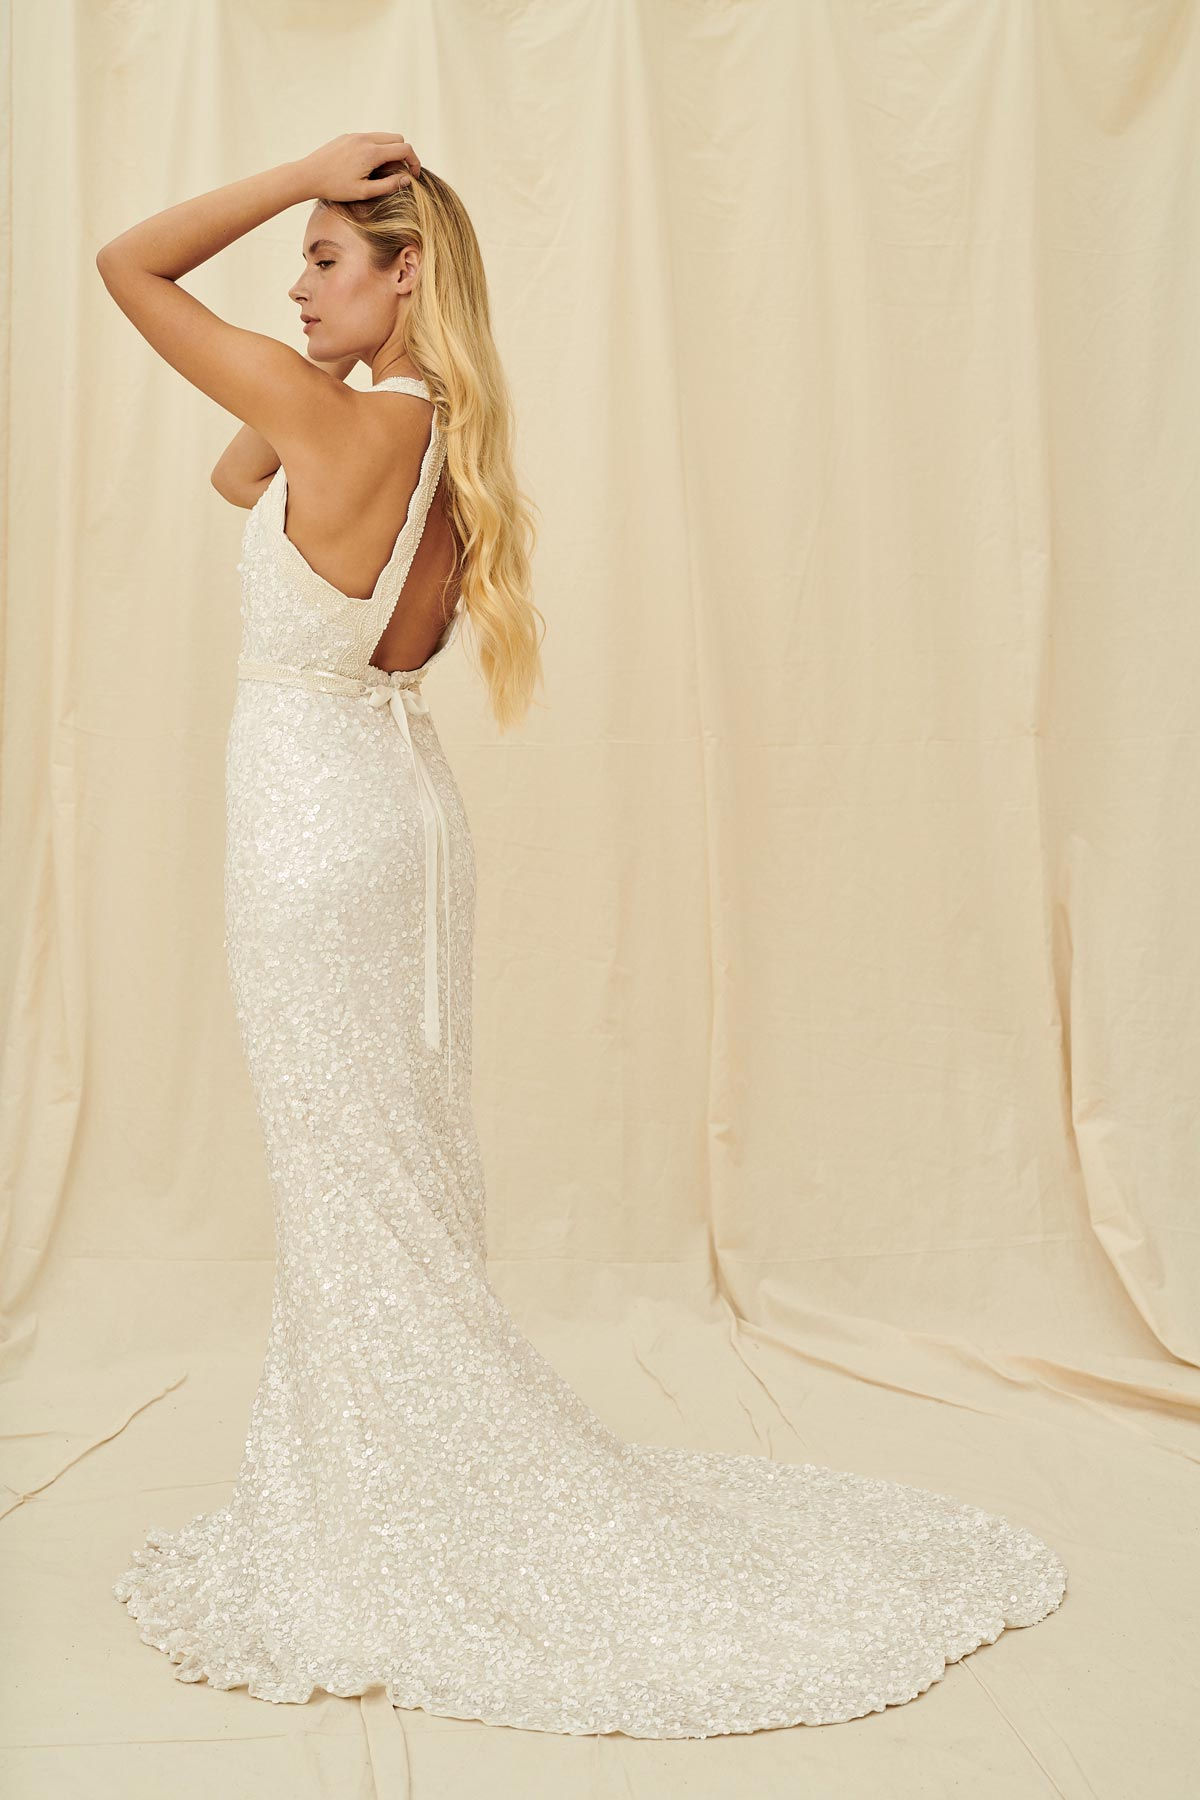 A unique beaded wedding dress with a high neck, keyhole back and a fitted skirt with in a train